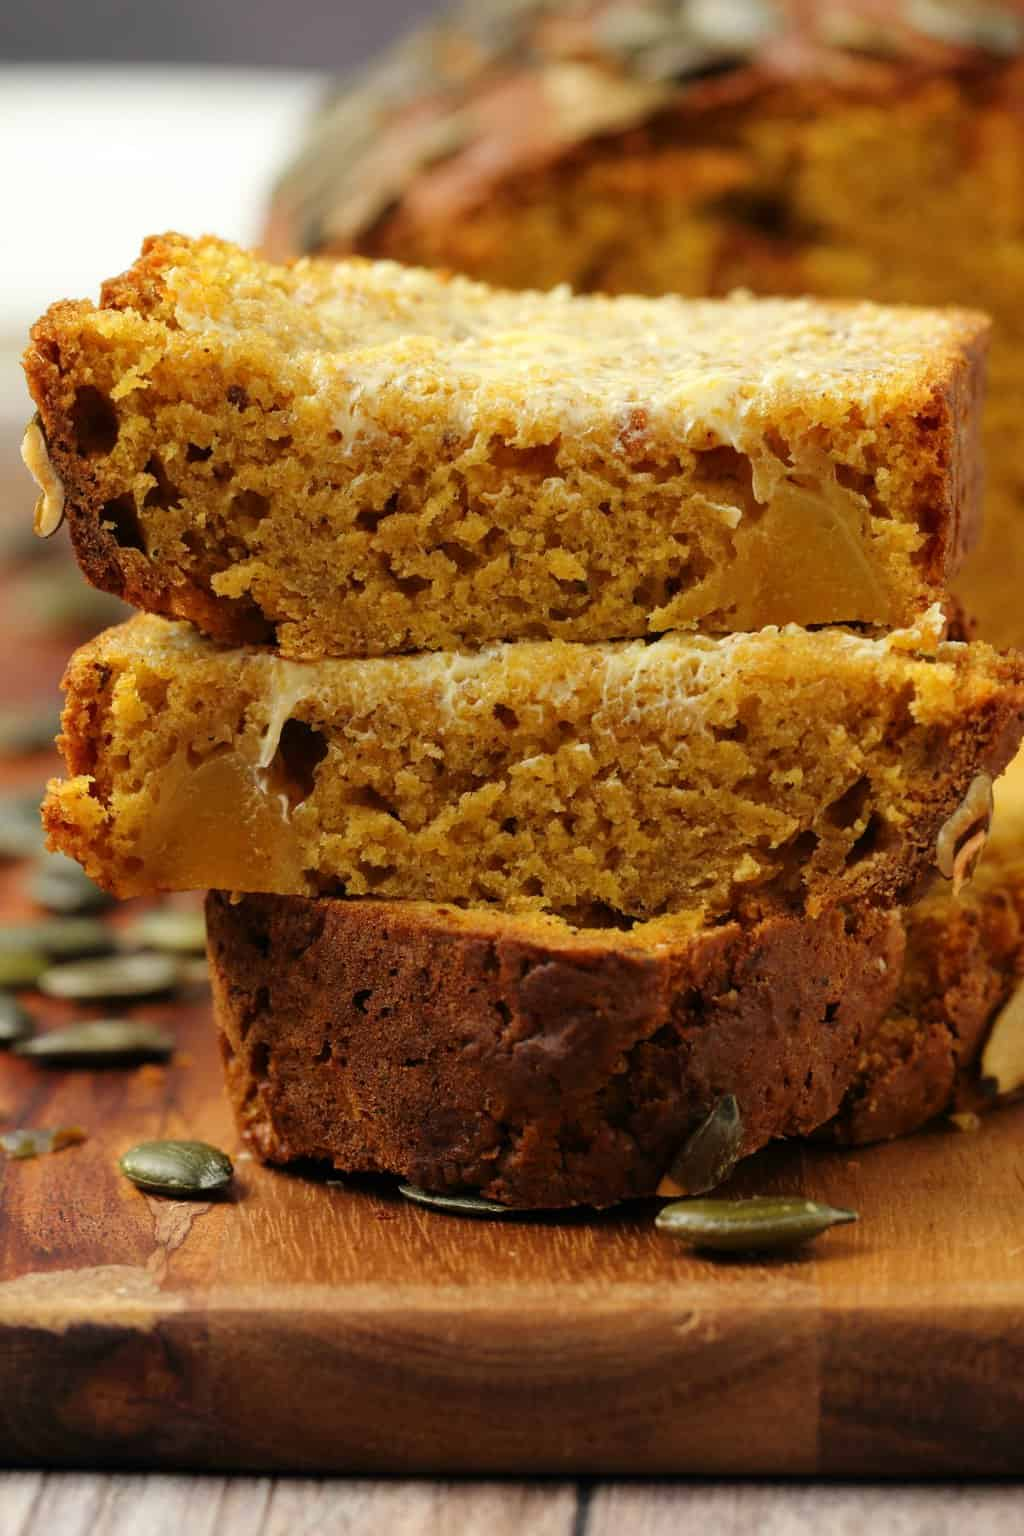 Slices of vegan pumpkin bread stacked up on a wooden board.